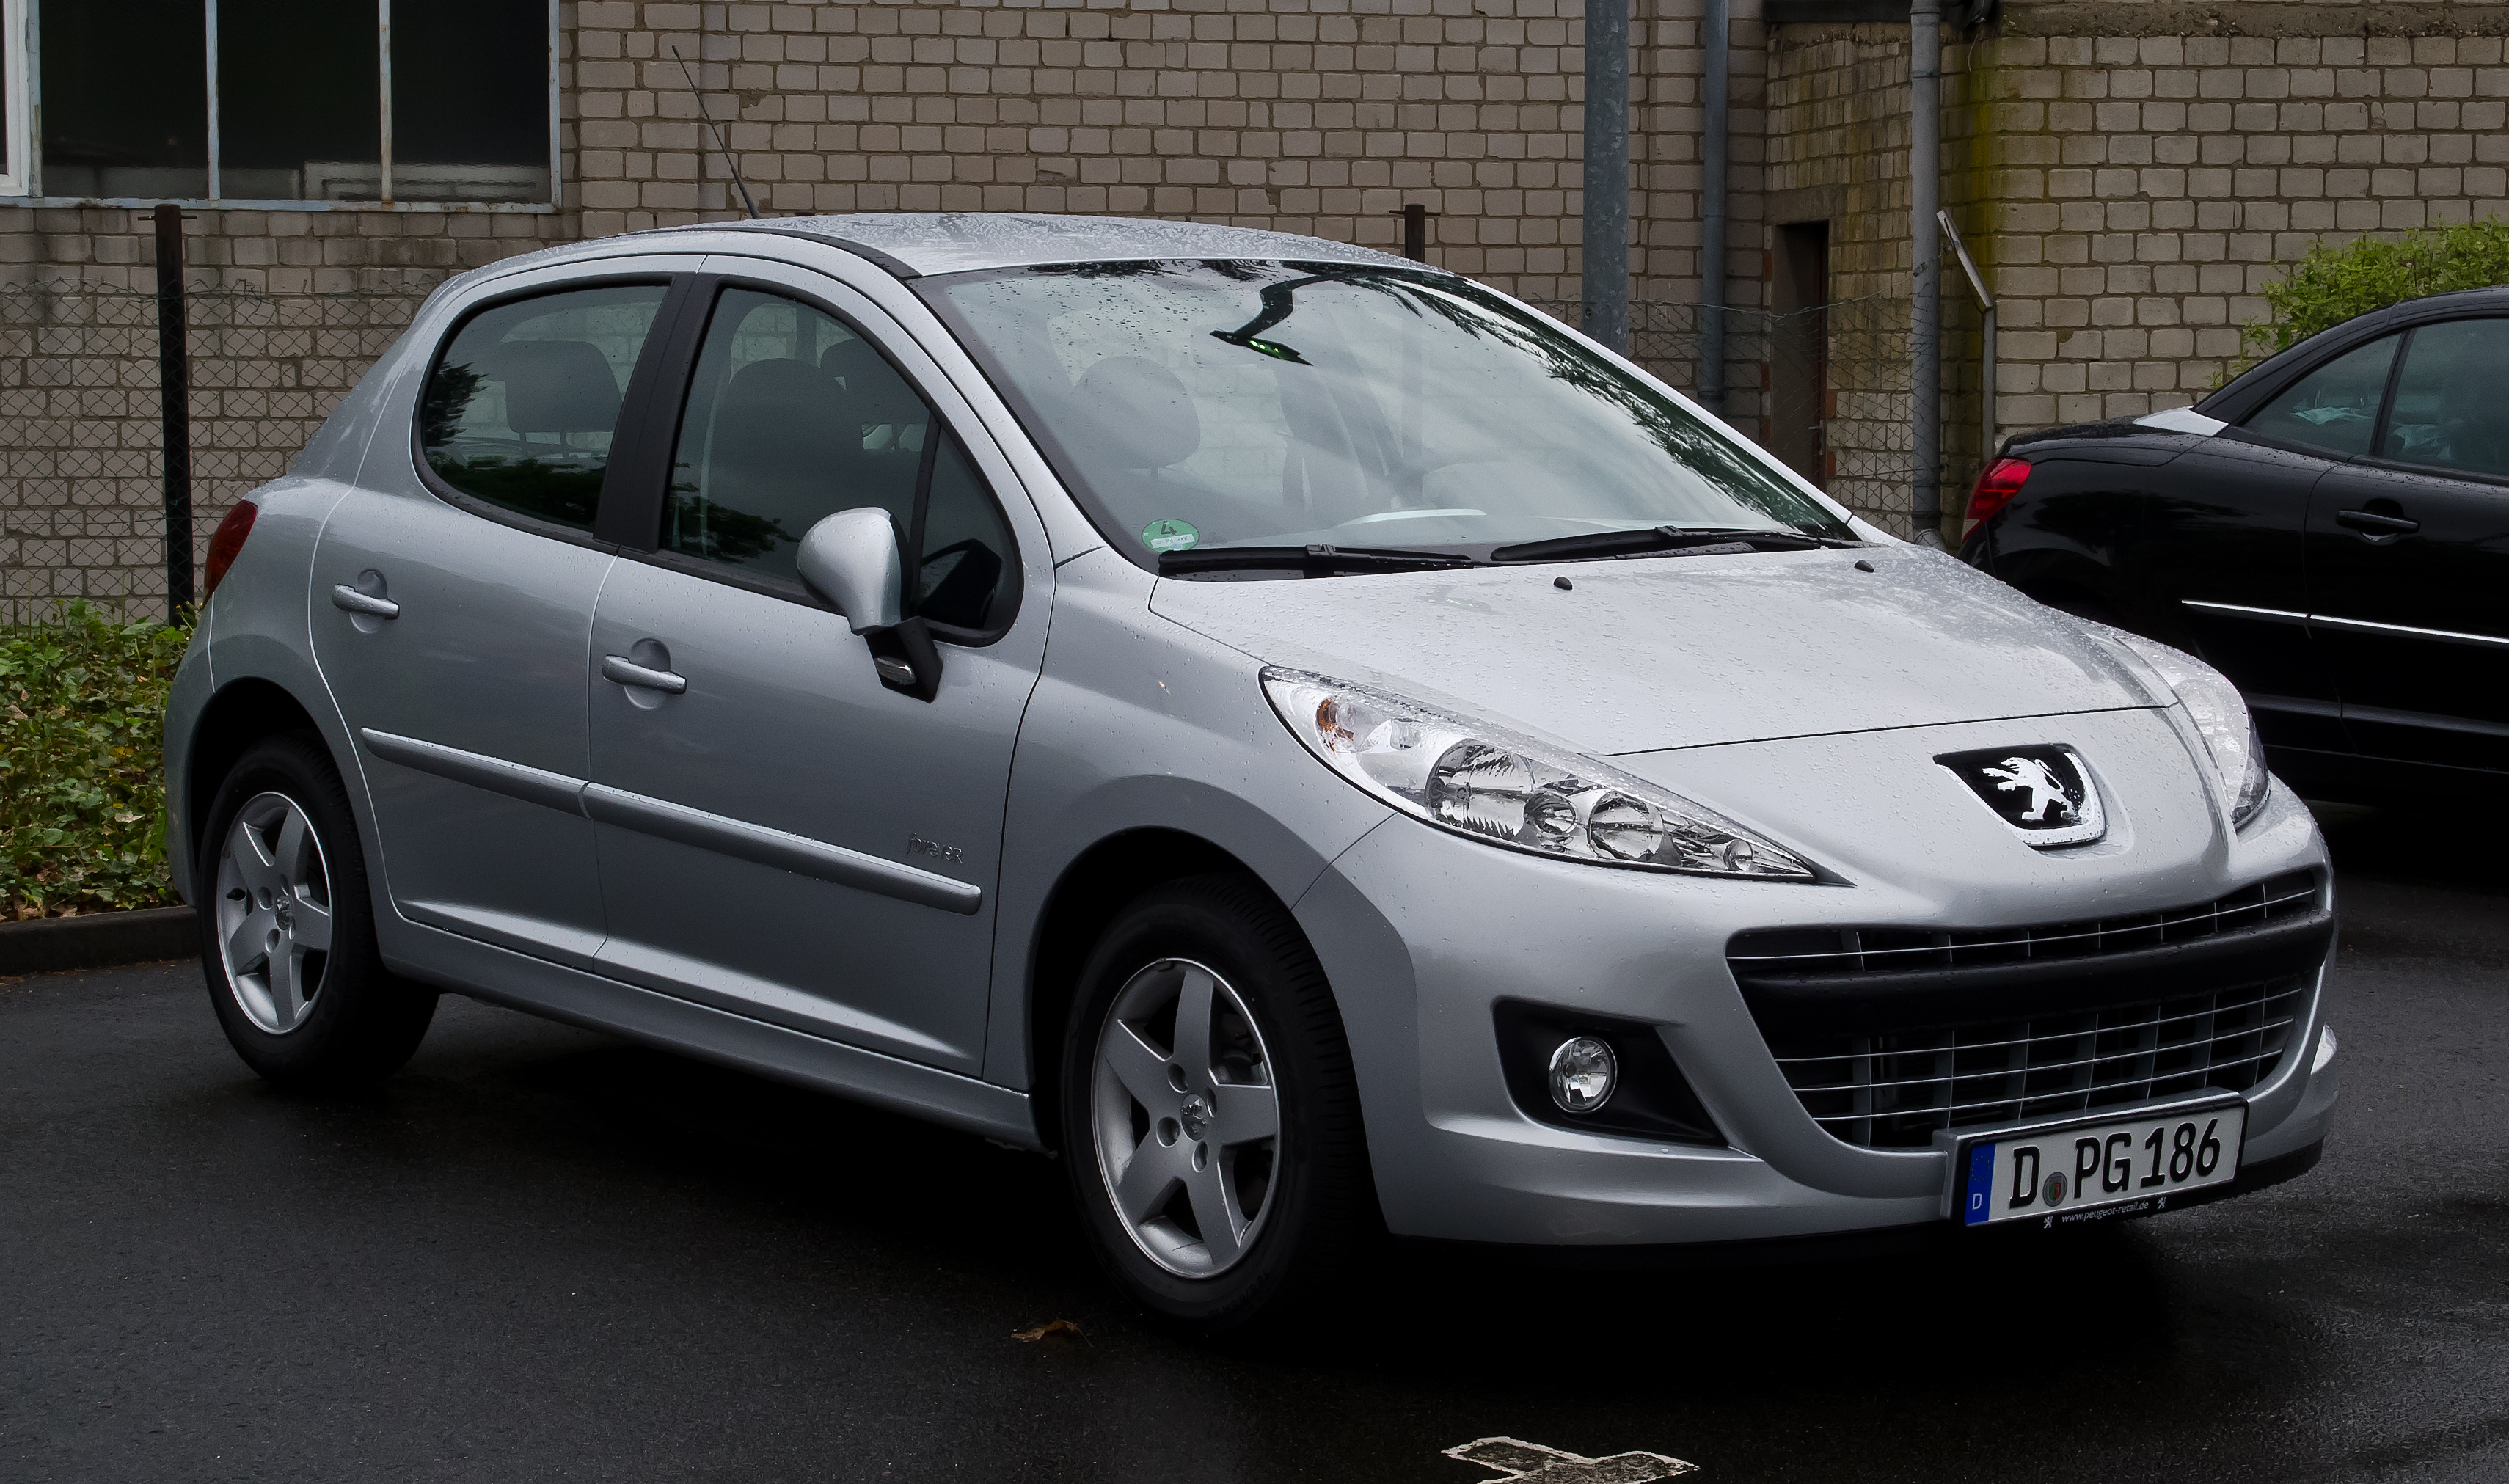 2012 peugeot 207 pictures information and specs auto. Black Bedroom Furniture Sets. Home Design Ideas